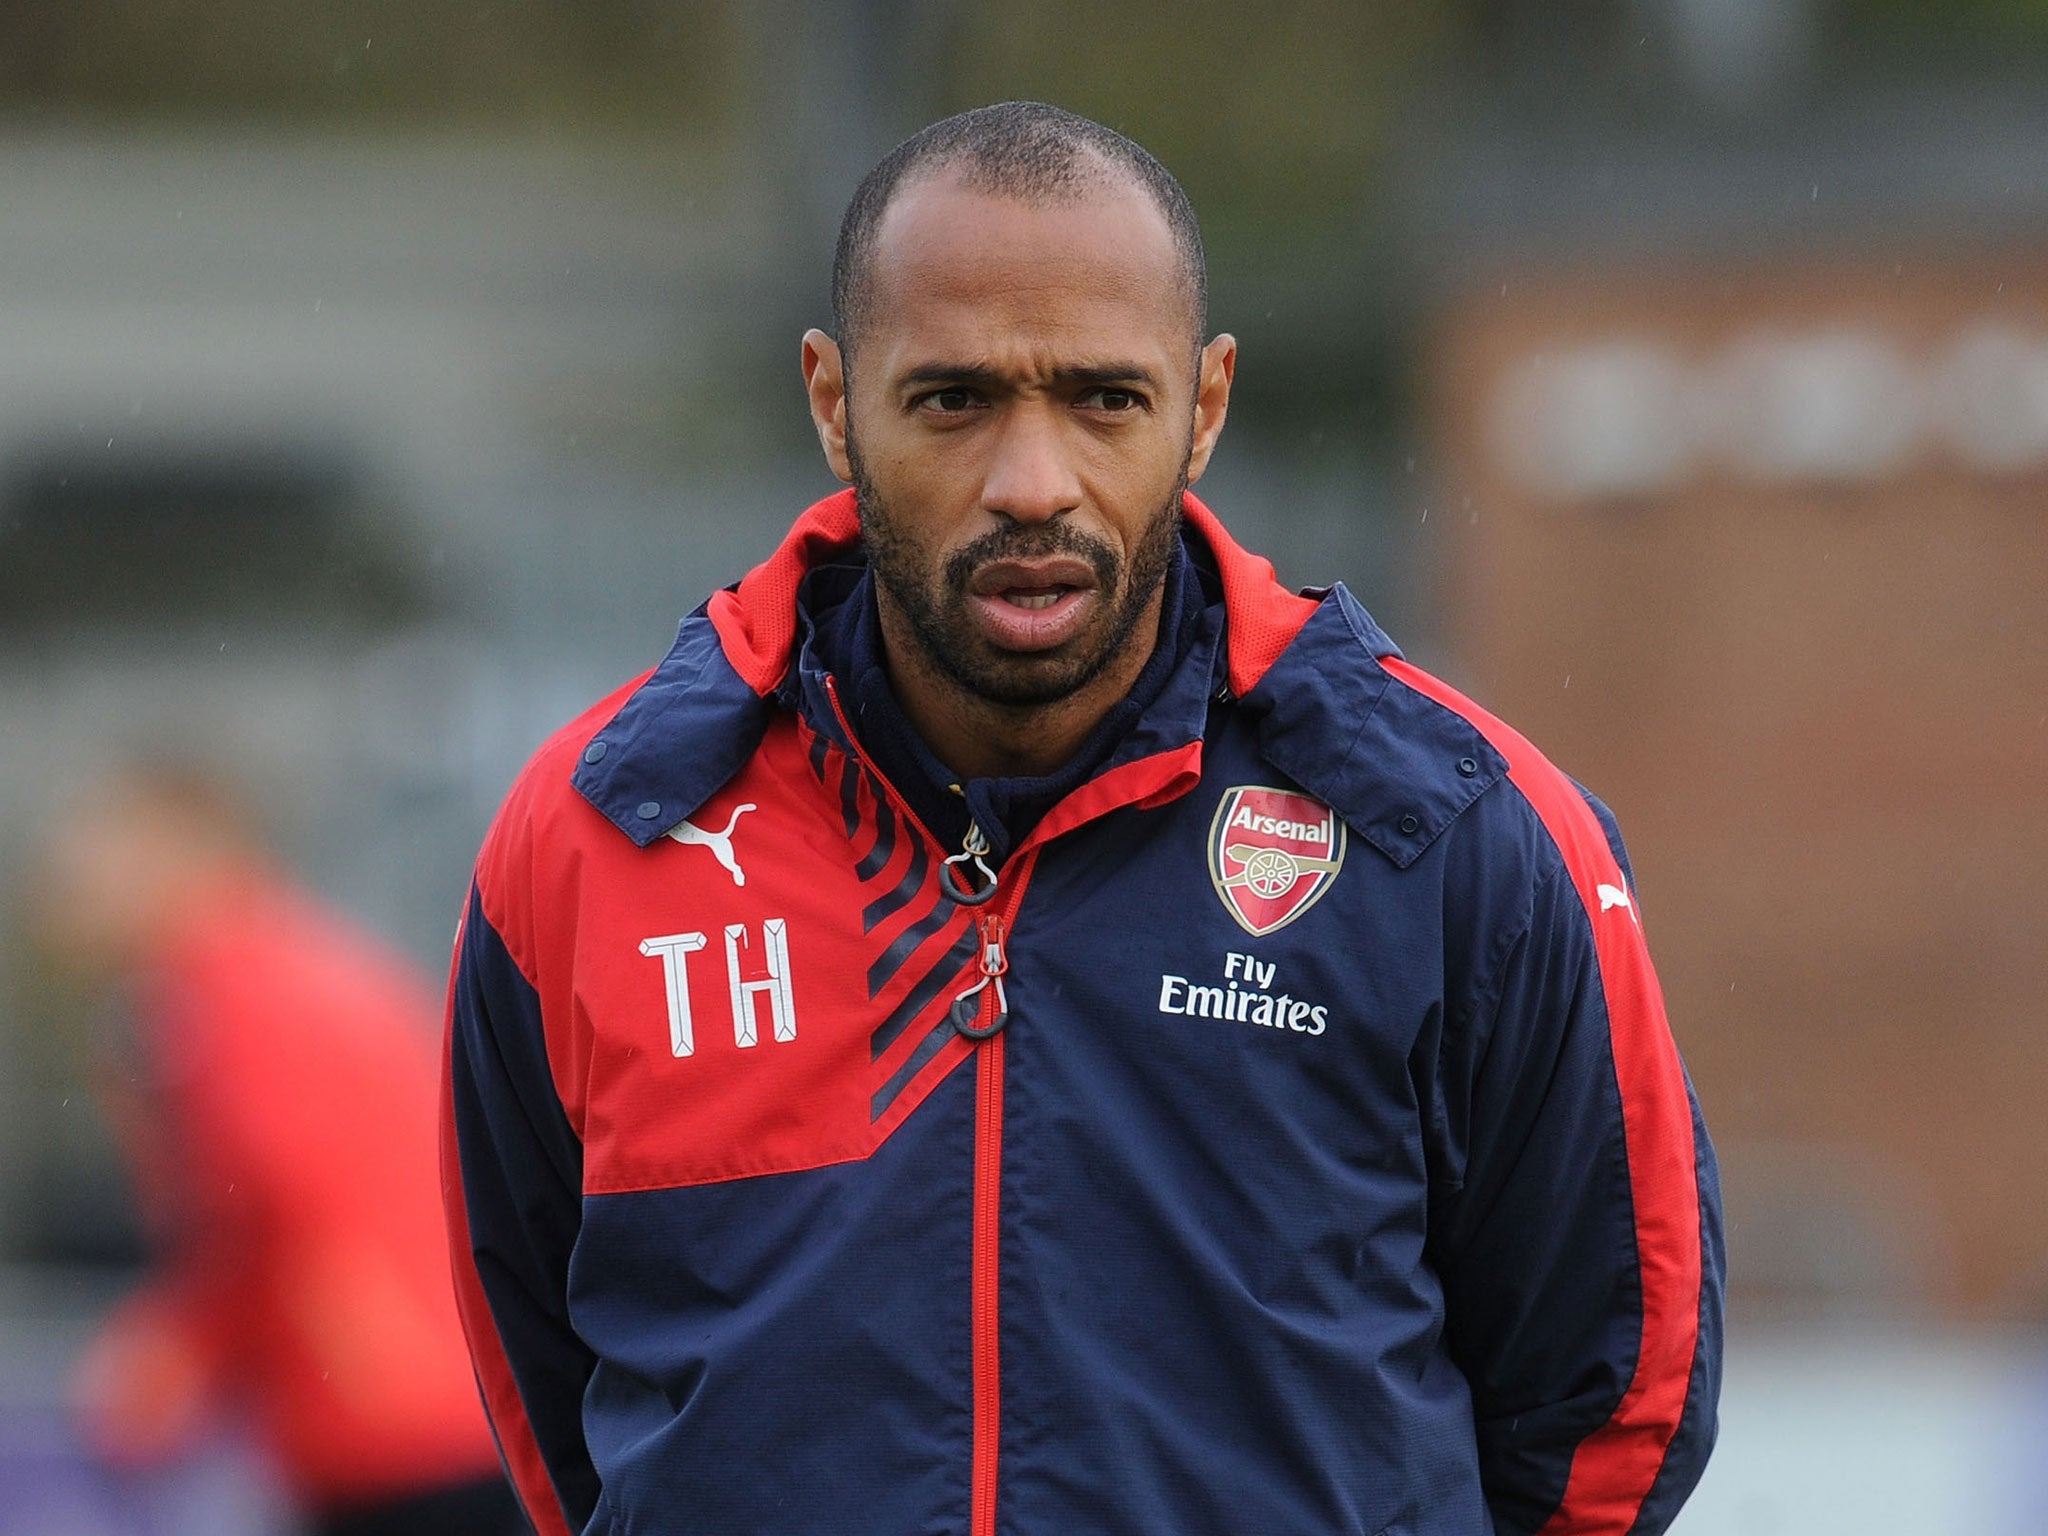 Thierry Henry Arsenal striker at centre of favouritism row over